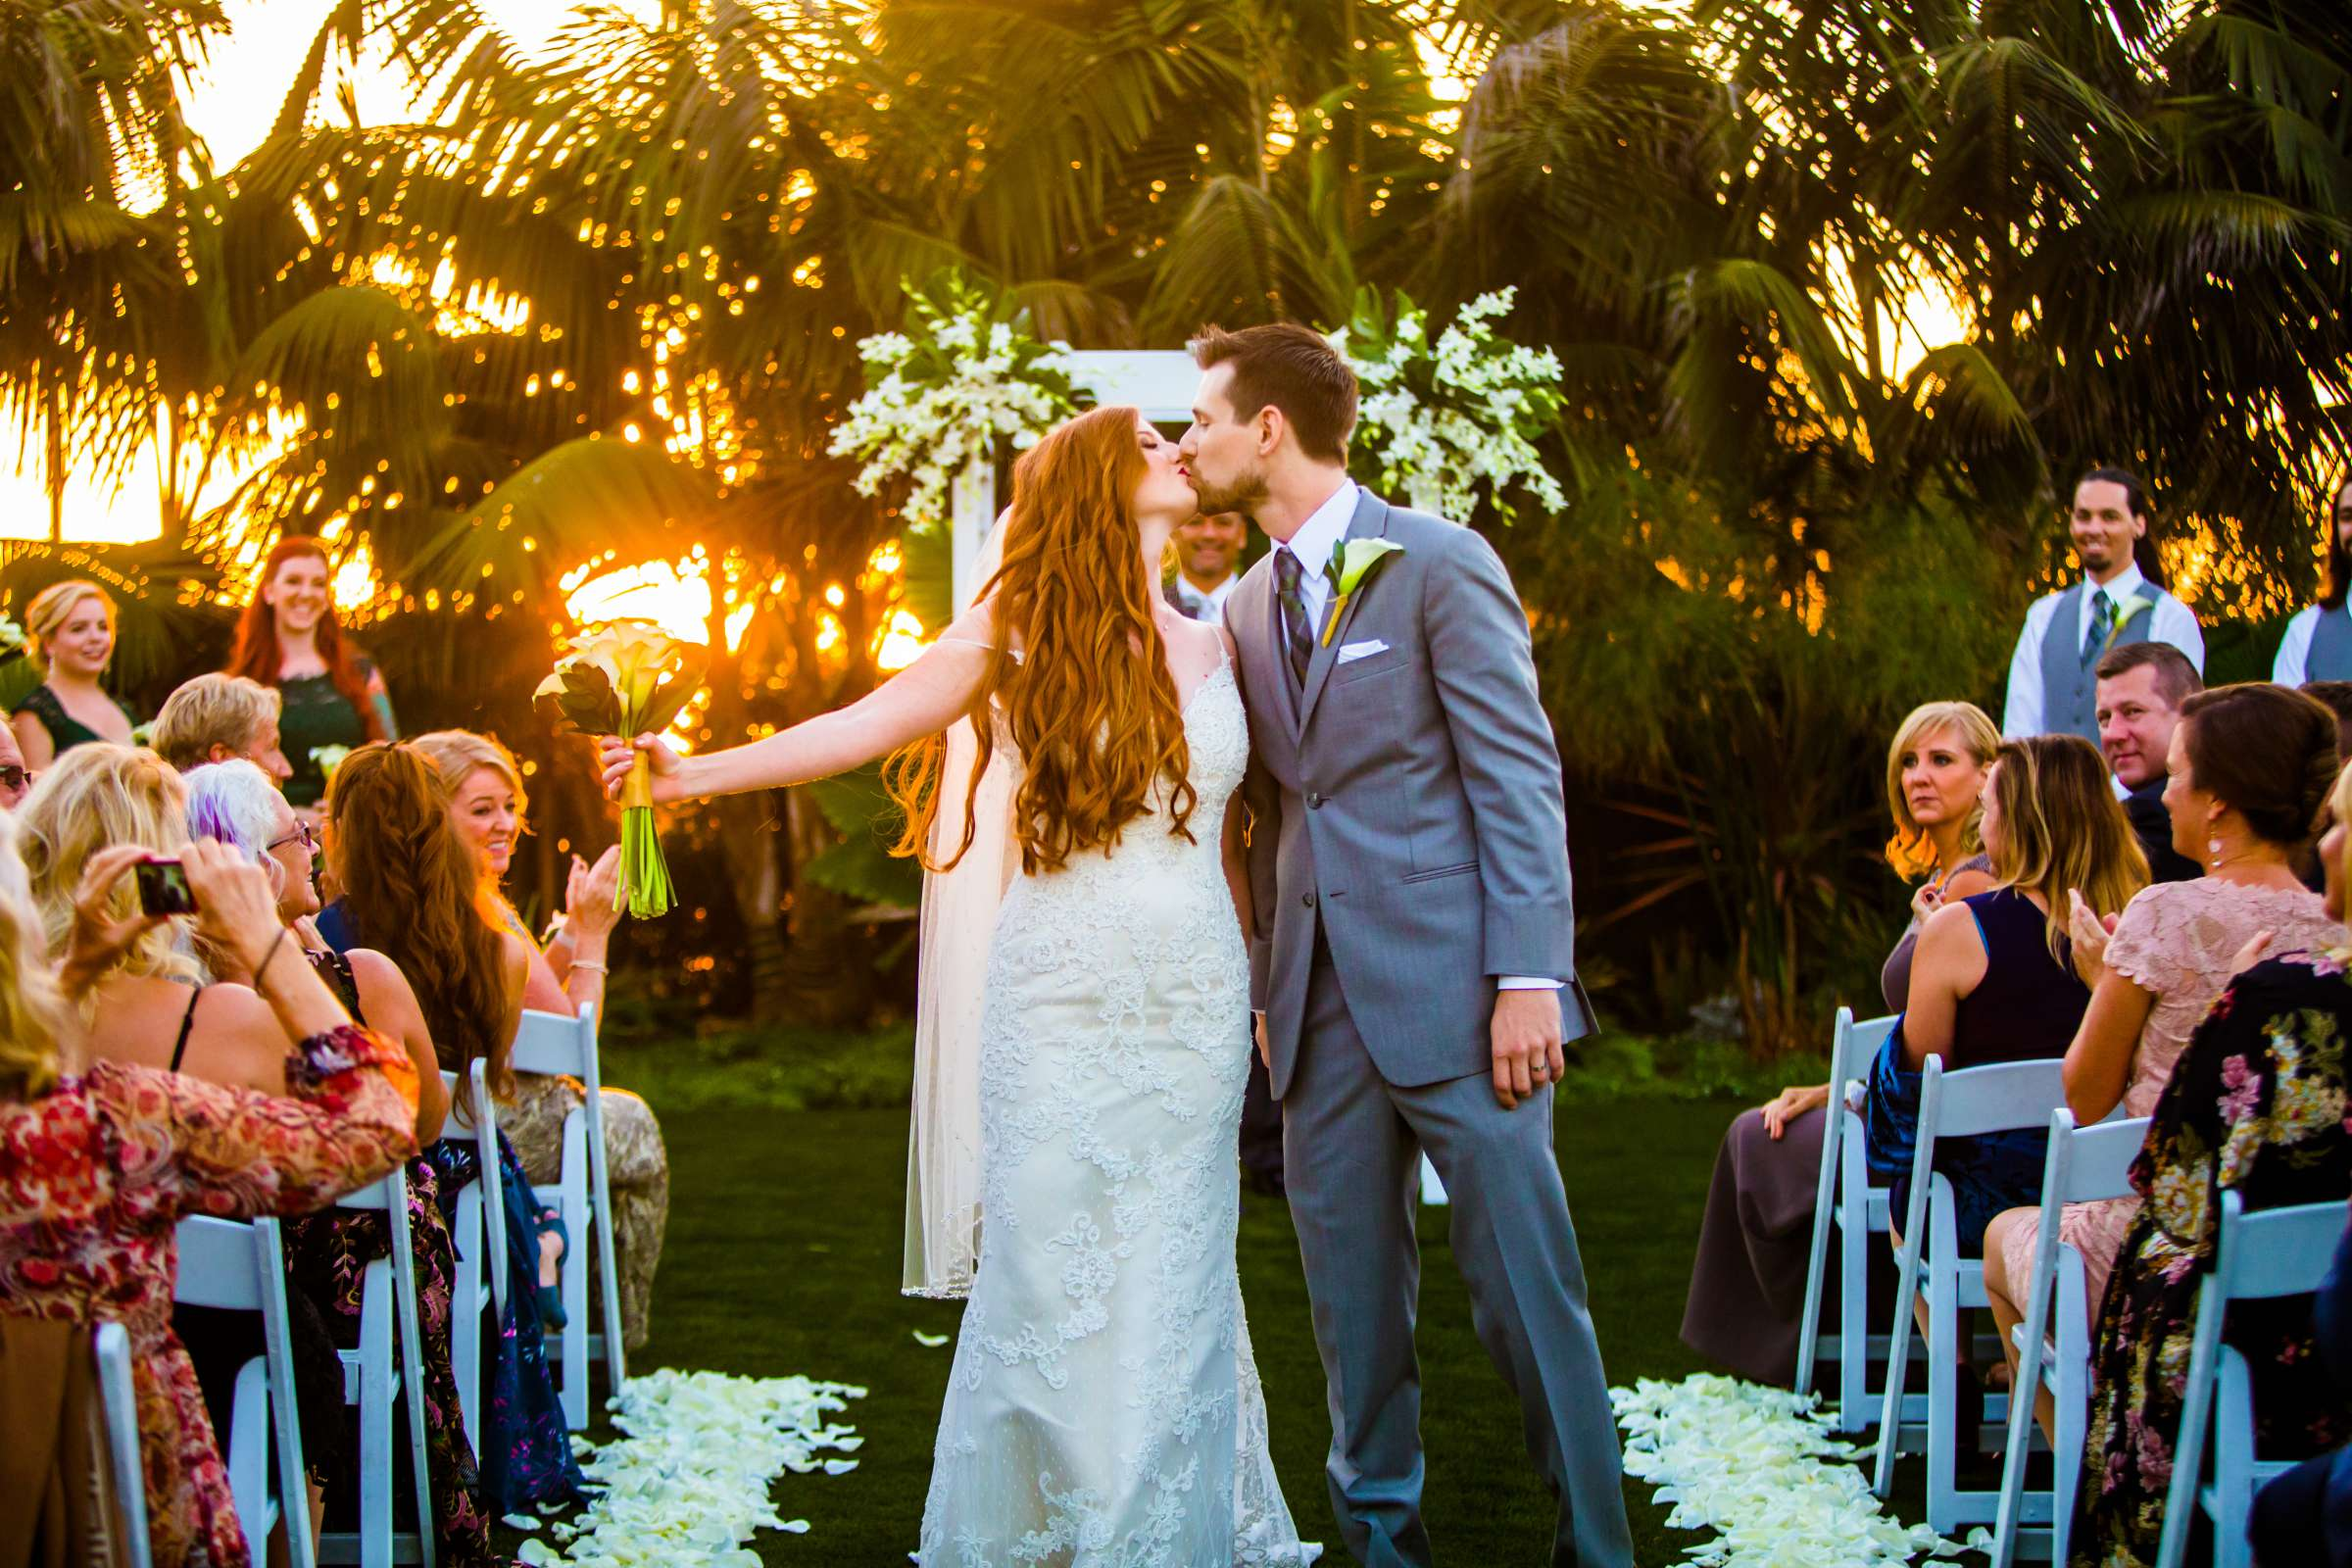 Cape Rey Carlsbad, A Hilton Resort Wedding coordinated by Holly Kalkin Weddings, Sarah and Bryce Wedding Photo #426240 by True Photography